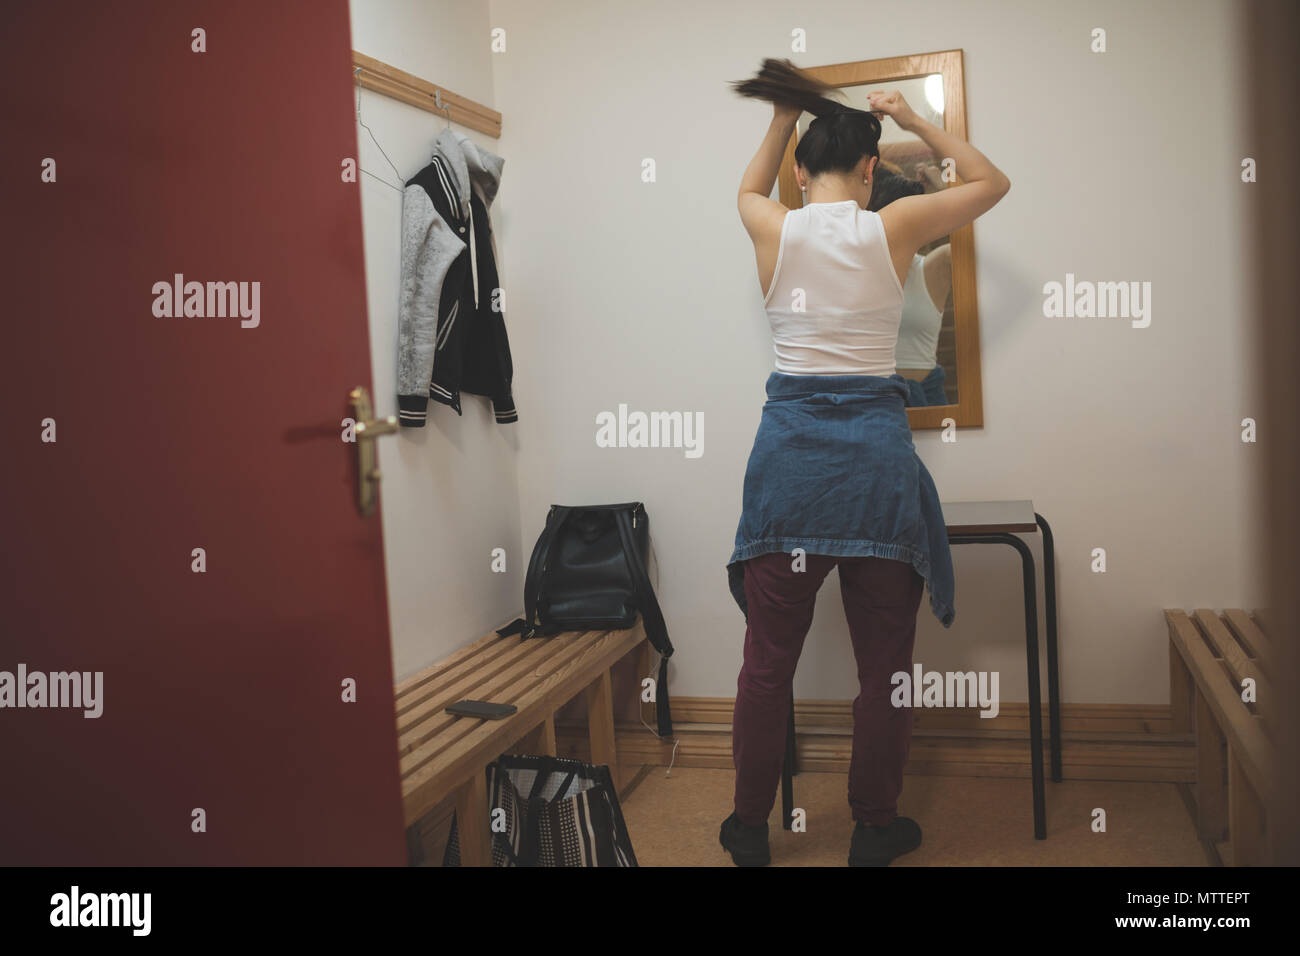 Female dancer tying her hair in changing room - Stock Image